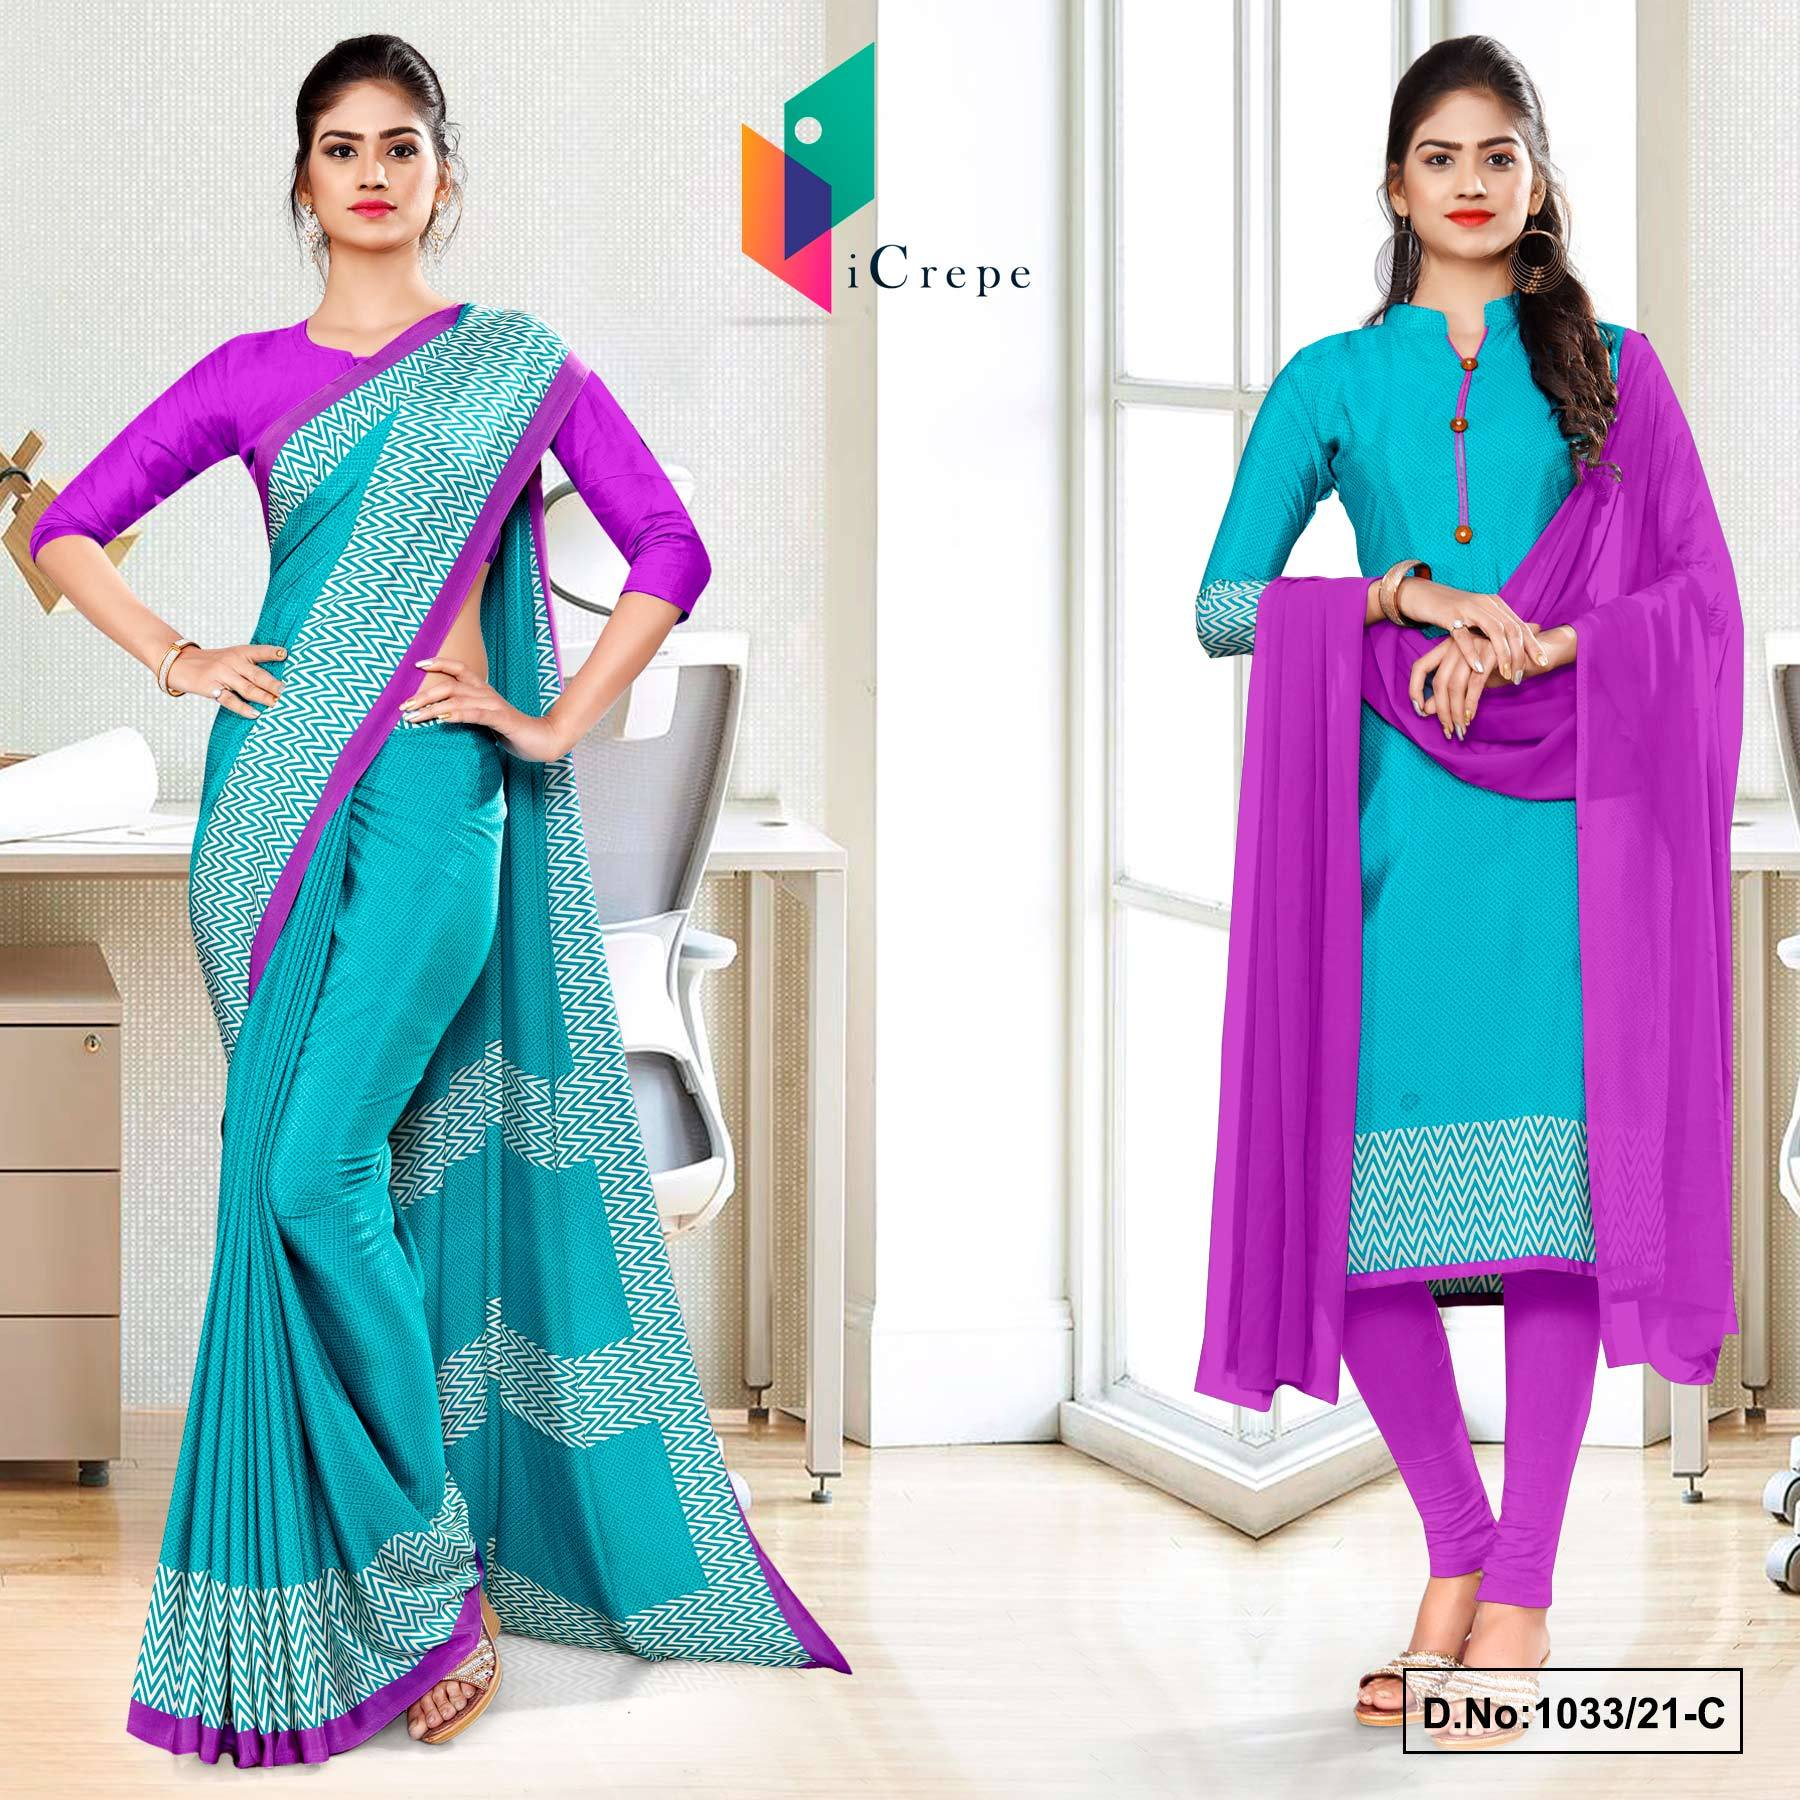 Sea Green lavender Premium Italian Silk Crepe Saree Salwar Combo for Workers Uniform Sarees